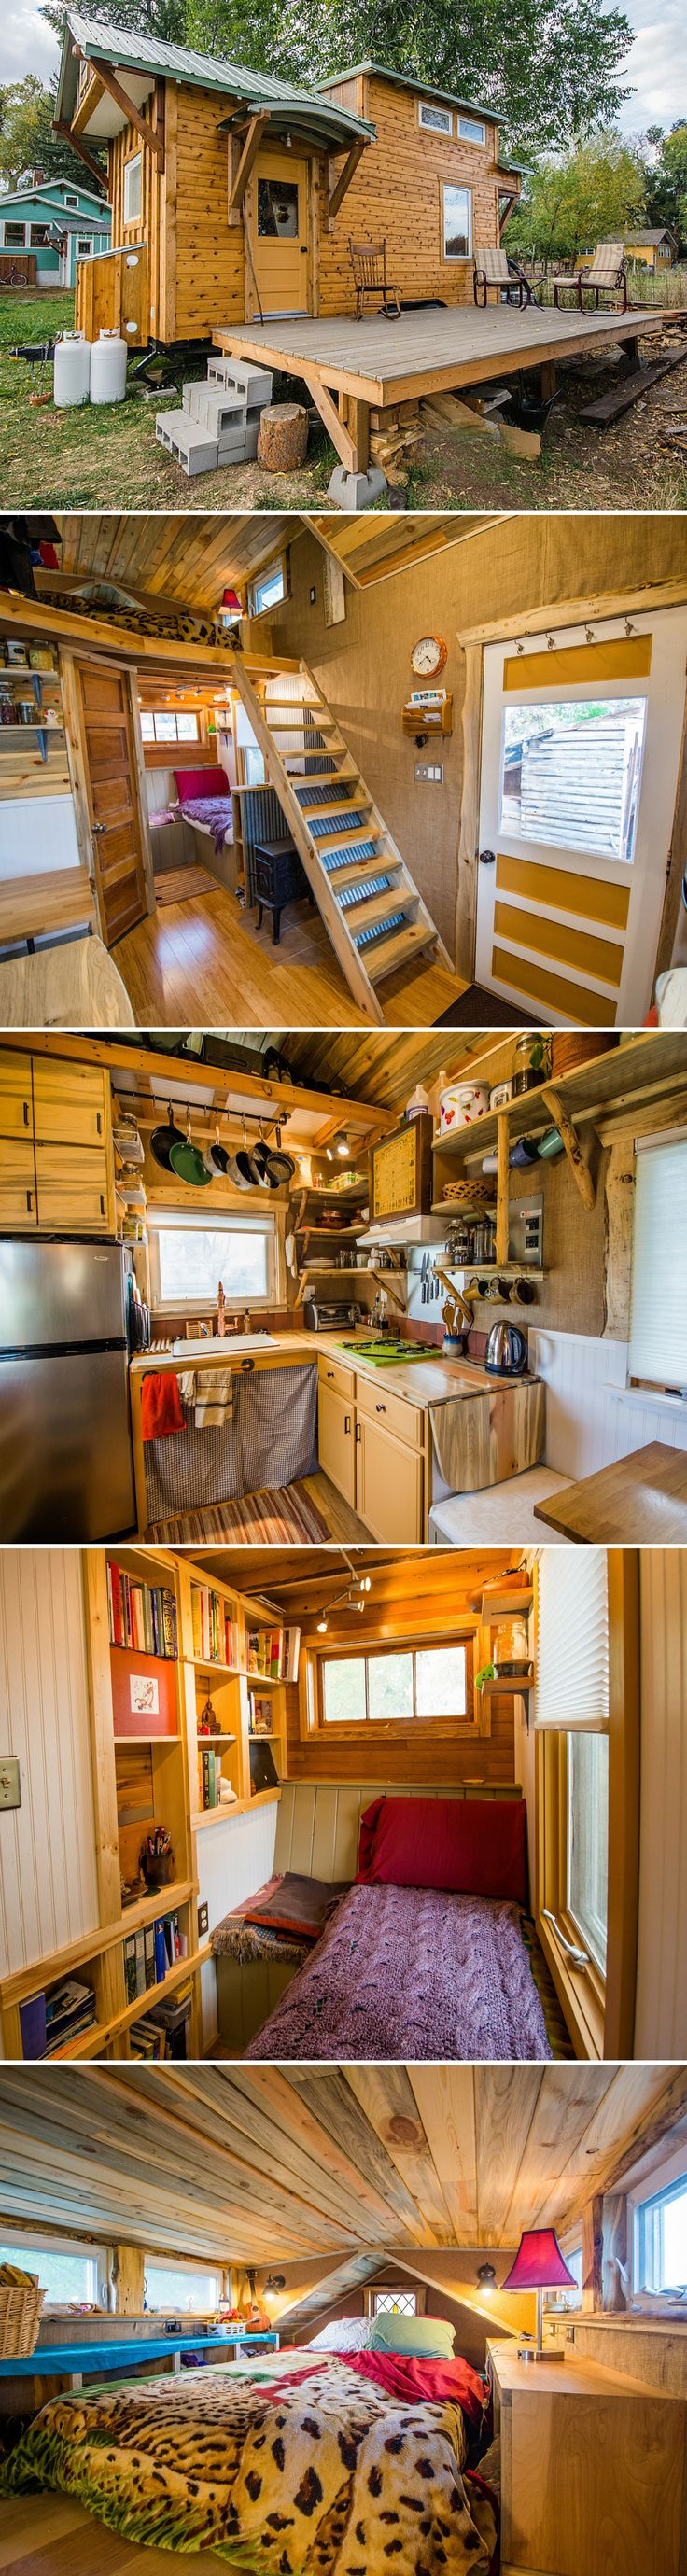 The Bookworm: a 160 sq ft home with a small home library